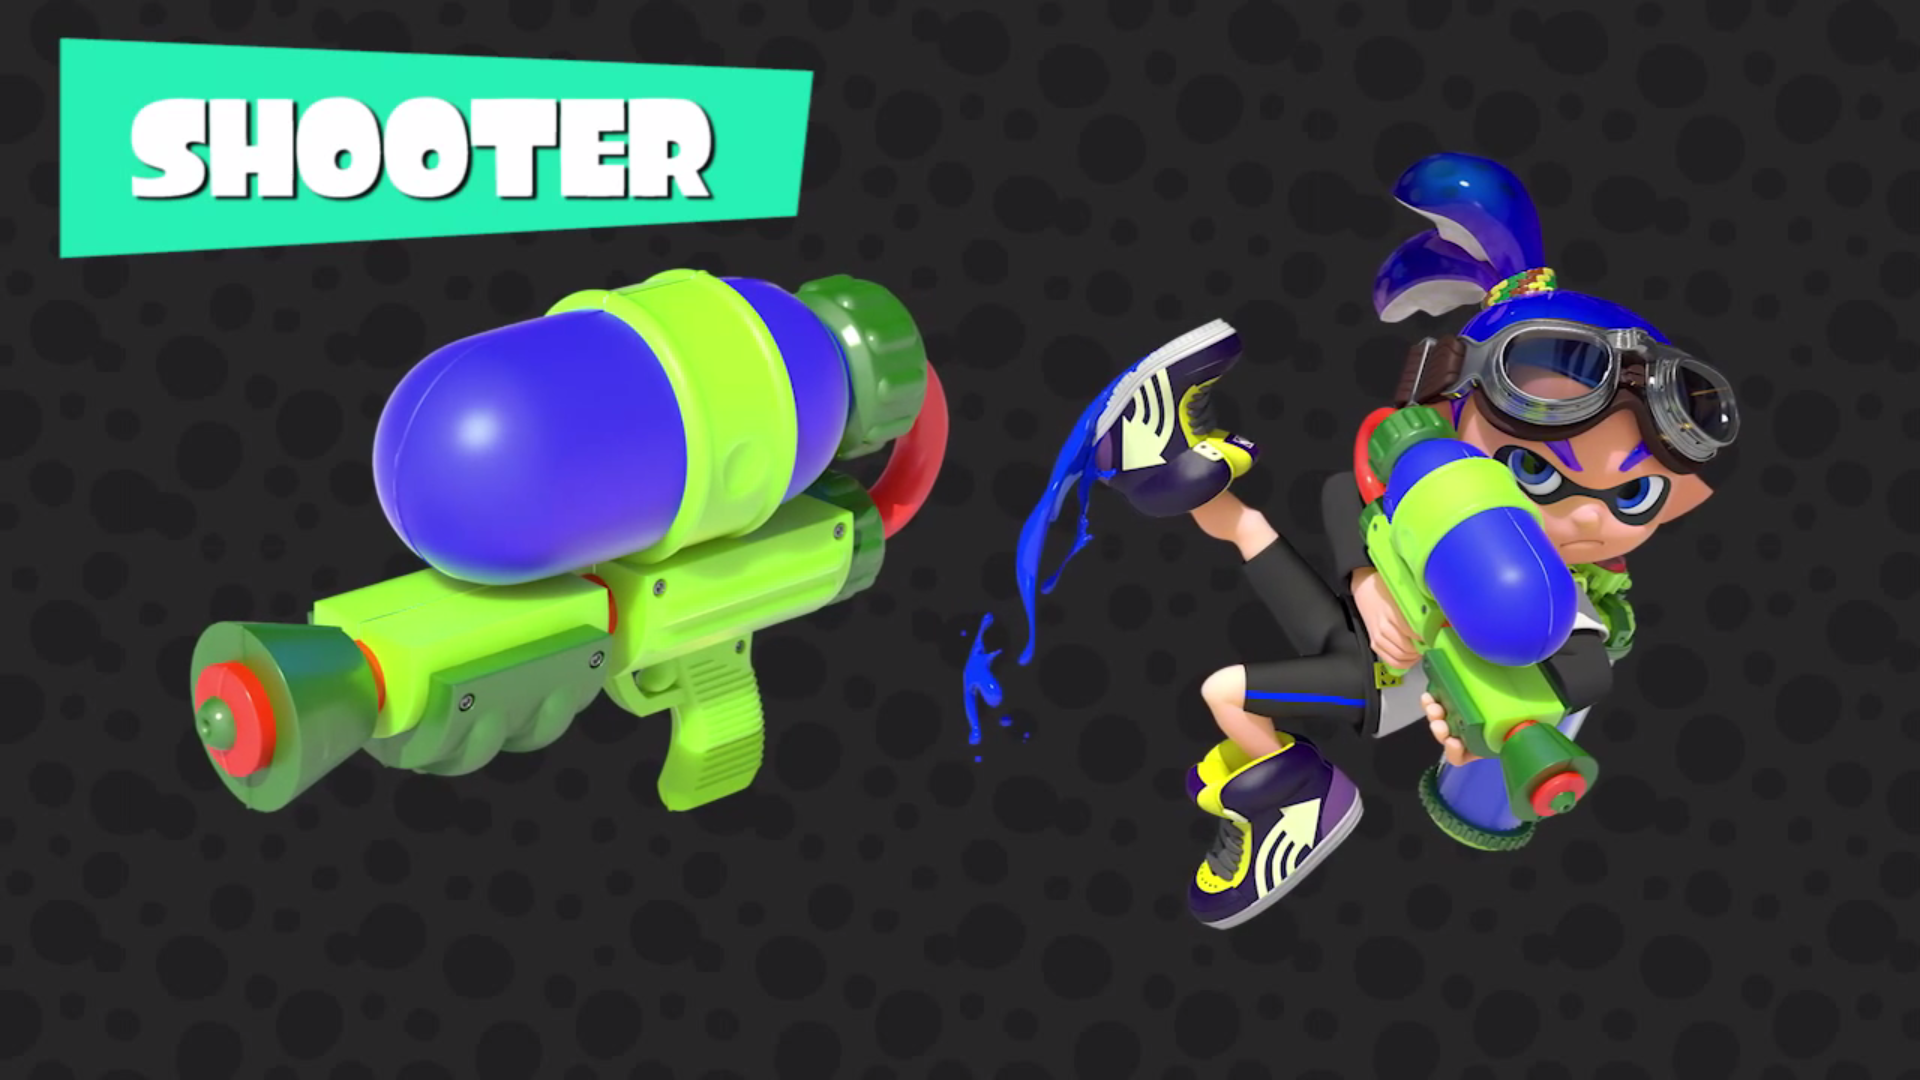 http://vignette3.wikia.nocookie.net/splatoon/images/e/ed/Shooter.png/revision/latest?cb=20150507203649